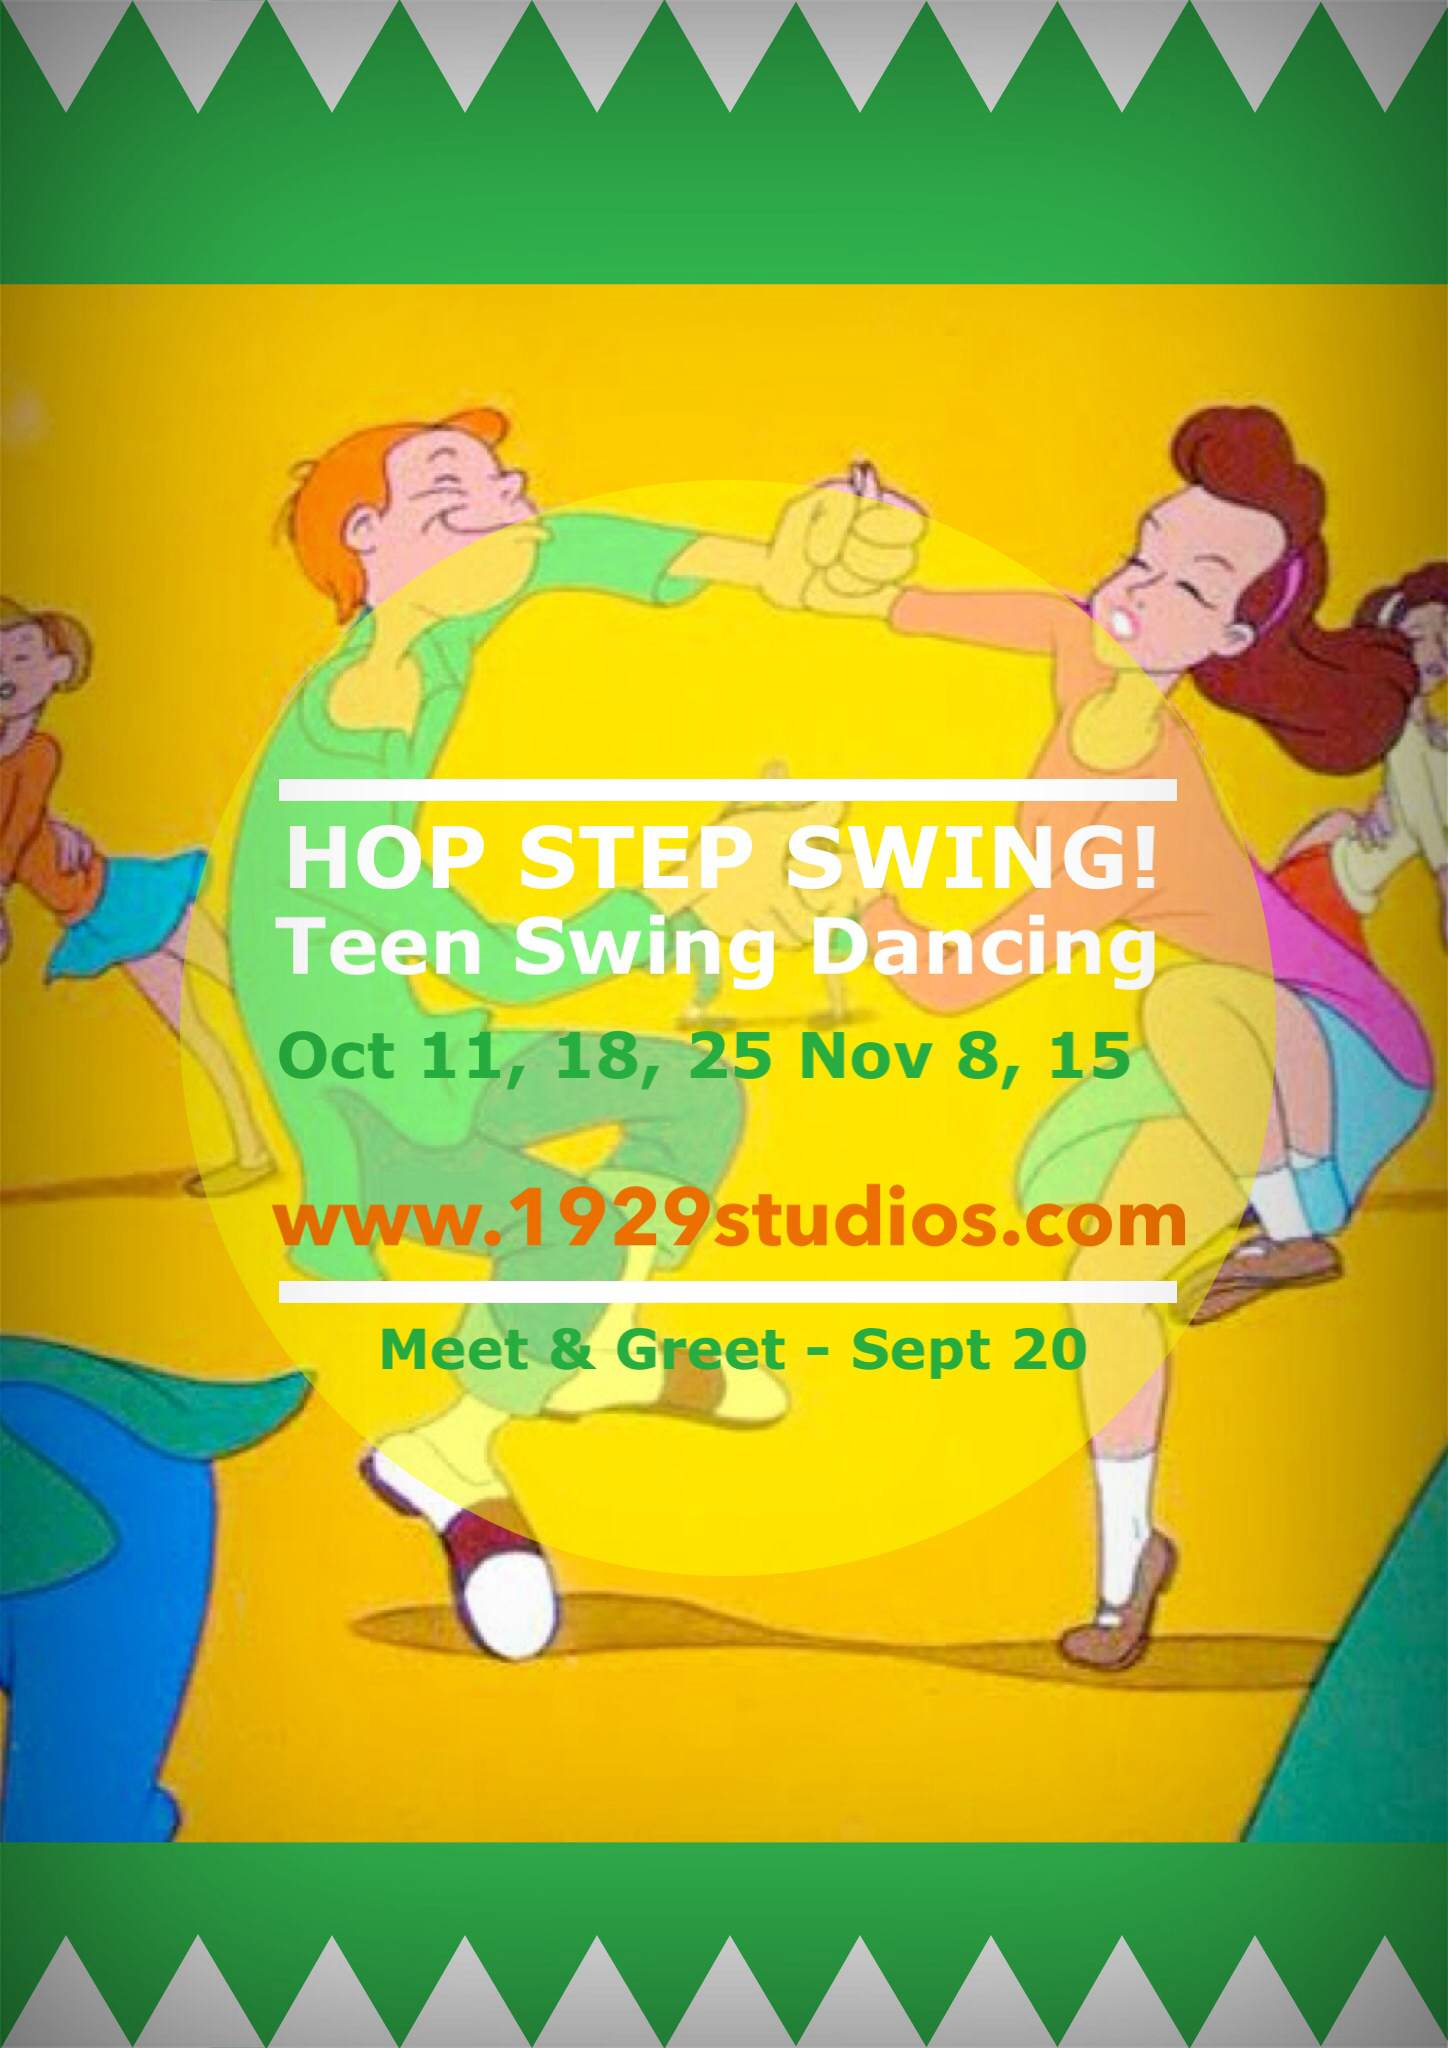 5 wk block in Term 4 --   Saturdays *    Oct 11, 18, 25, Nov 8, 15 -- in 1929's Studio, Collingwood